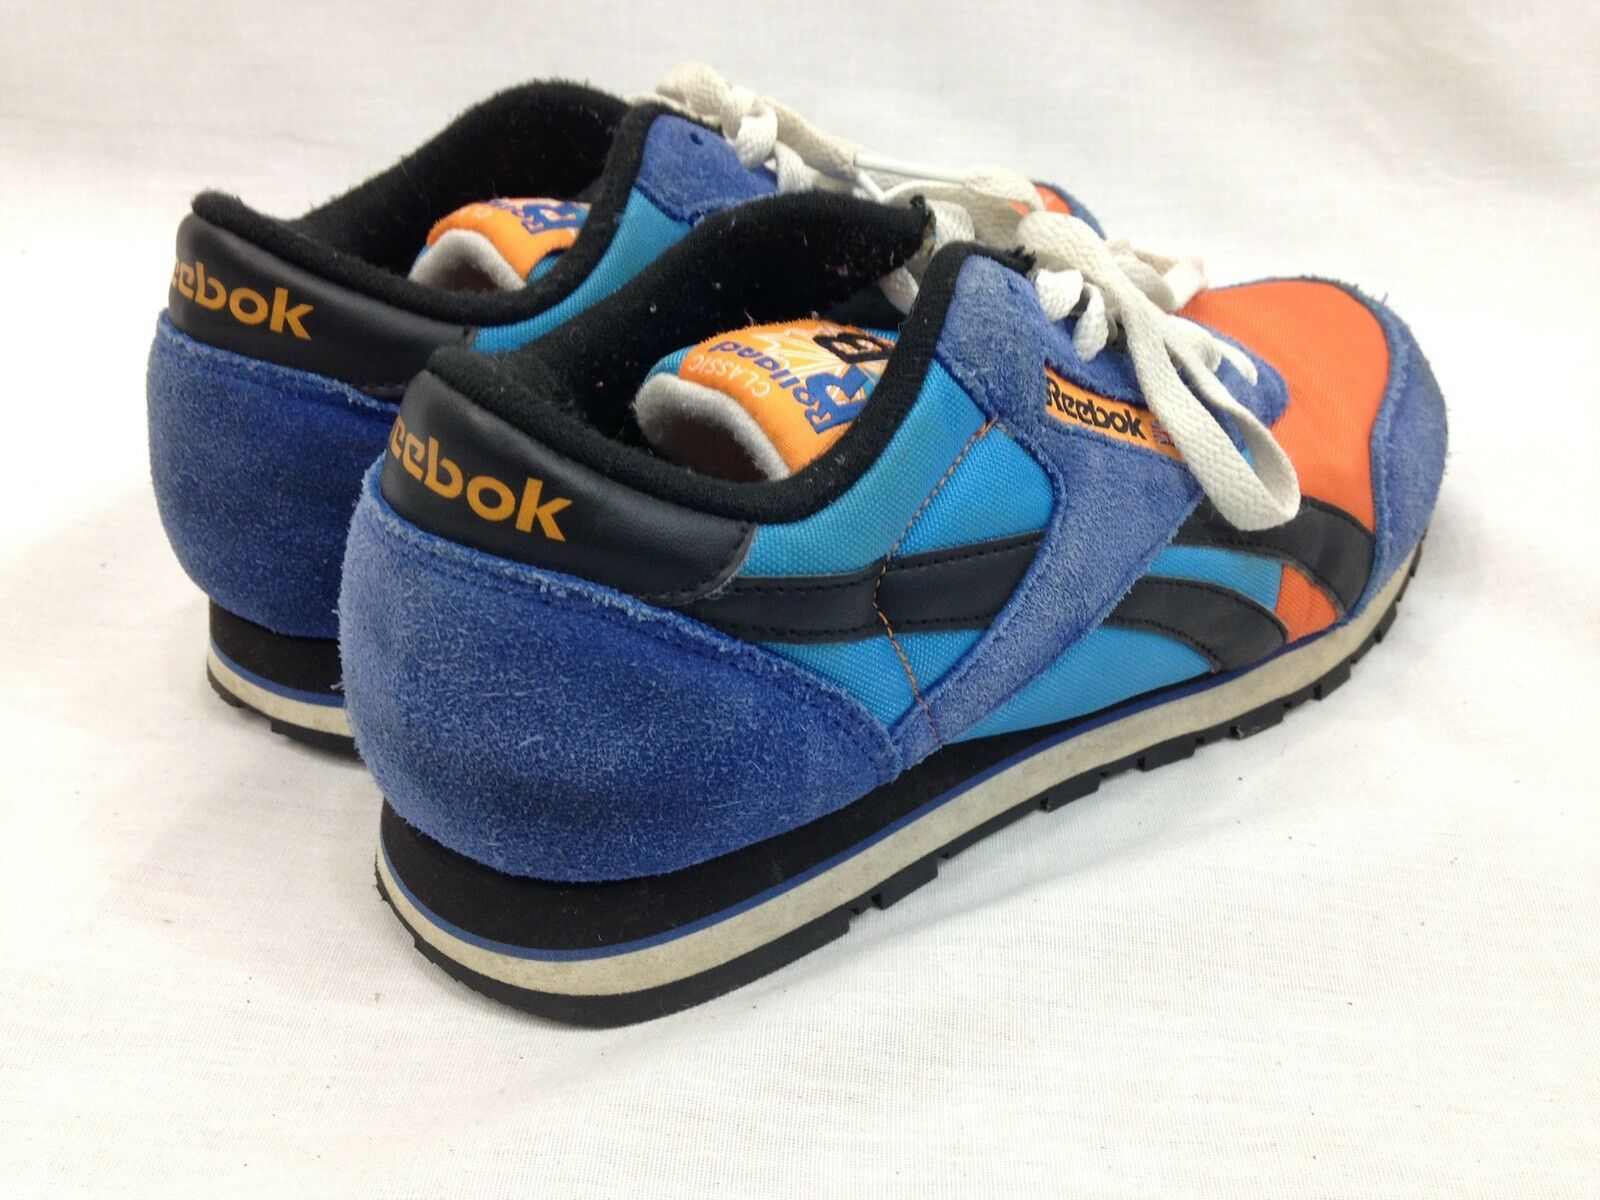 Reebok Classic Sneakers Schuhes  Uomo 6 Rolland Berry Blau Up Orange Niedrig Top Lace Up Blau c194db